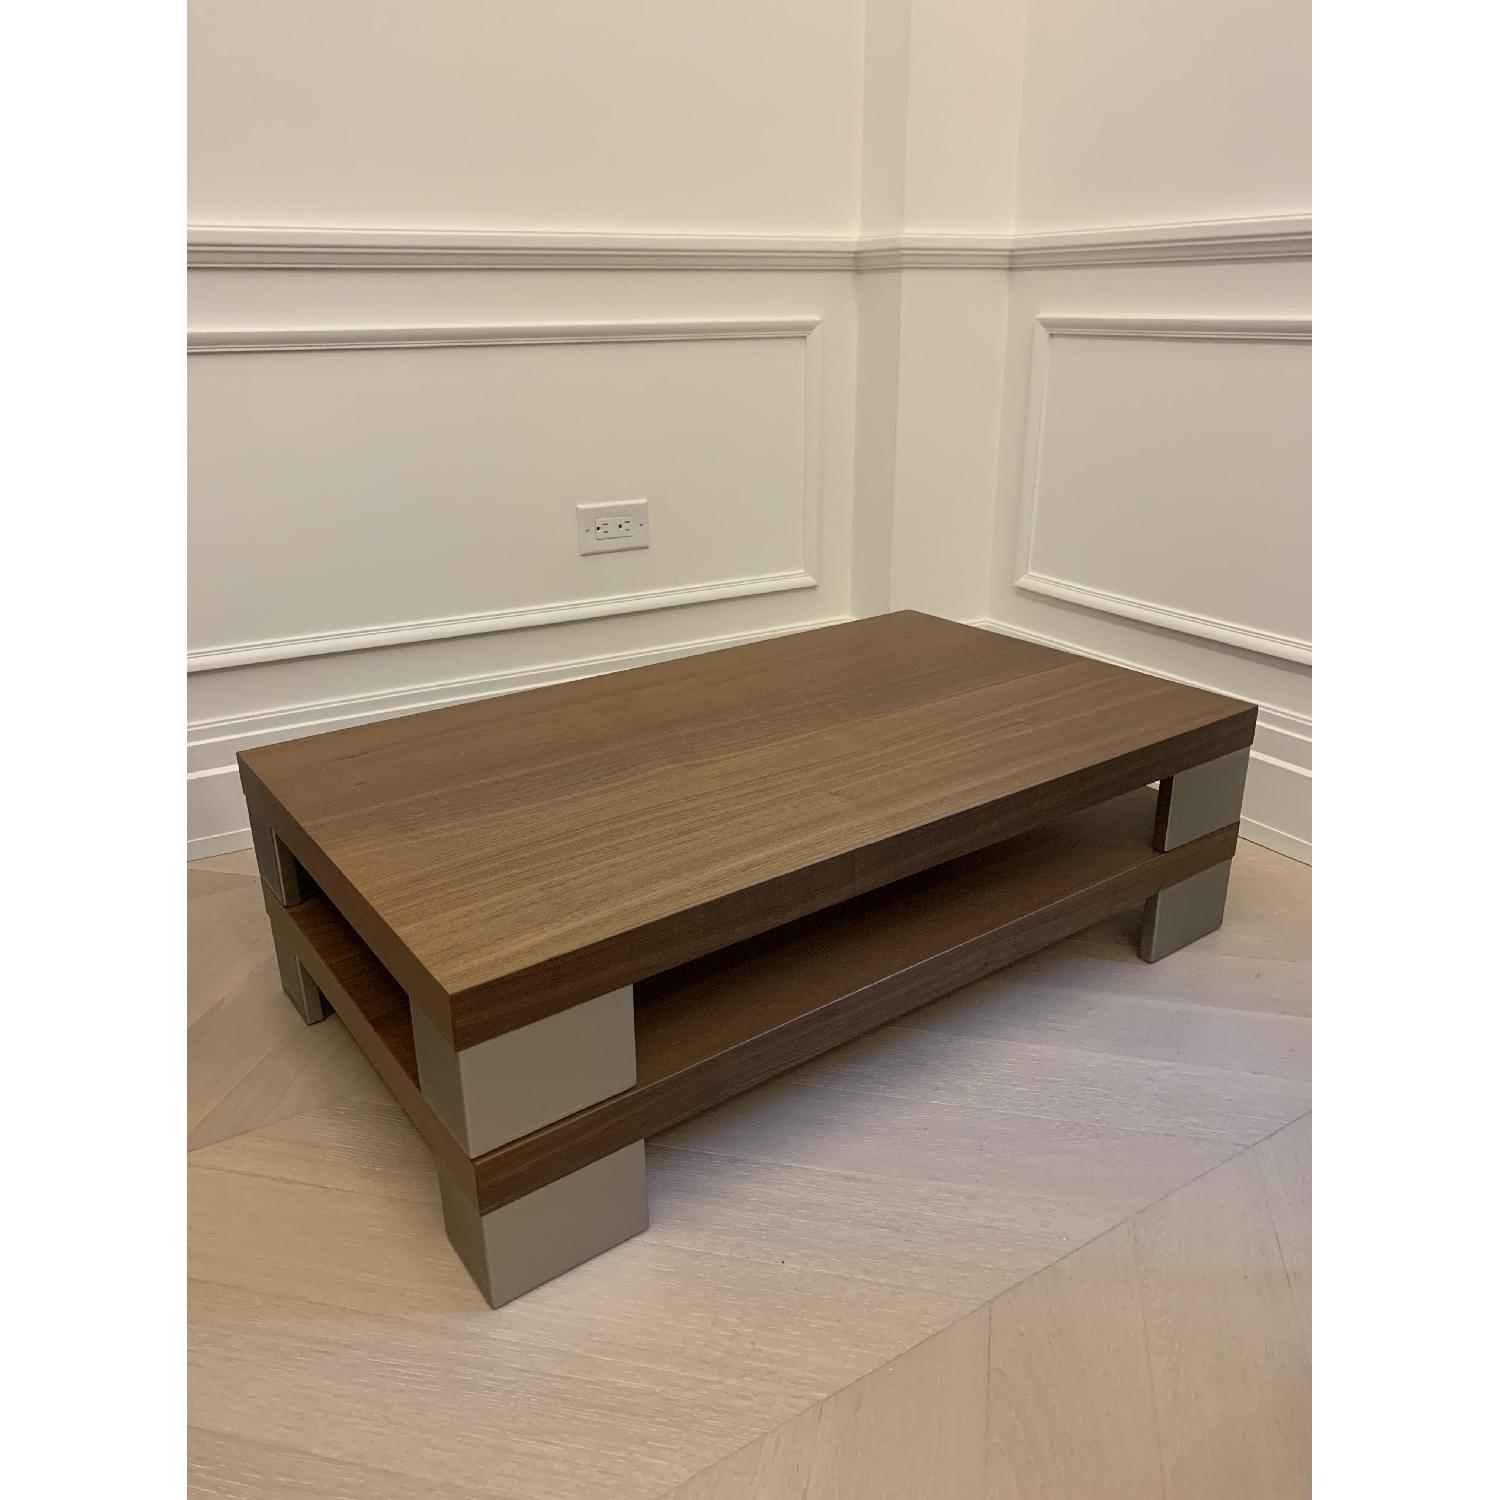 Taylor Made Japanese Coffee Table - image-2